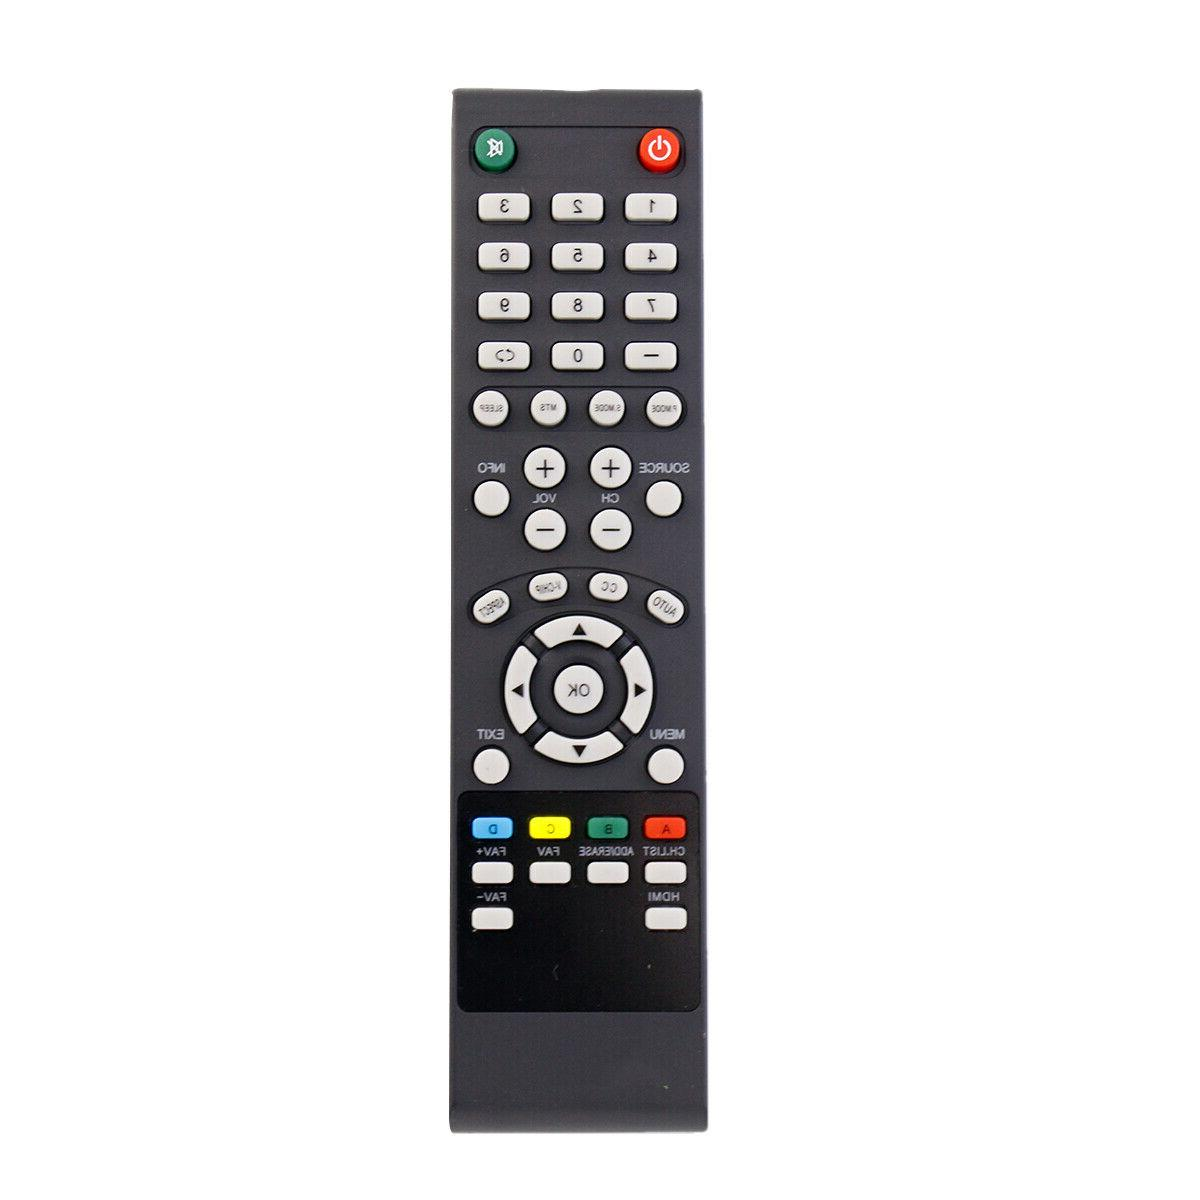 New Remote Control for Seiki LED HD TV SC-40FS703N SC-32HS70